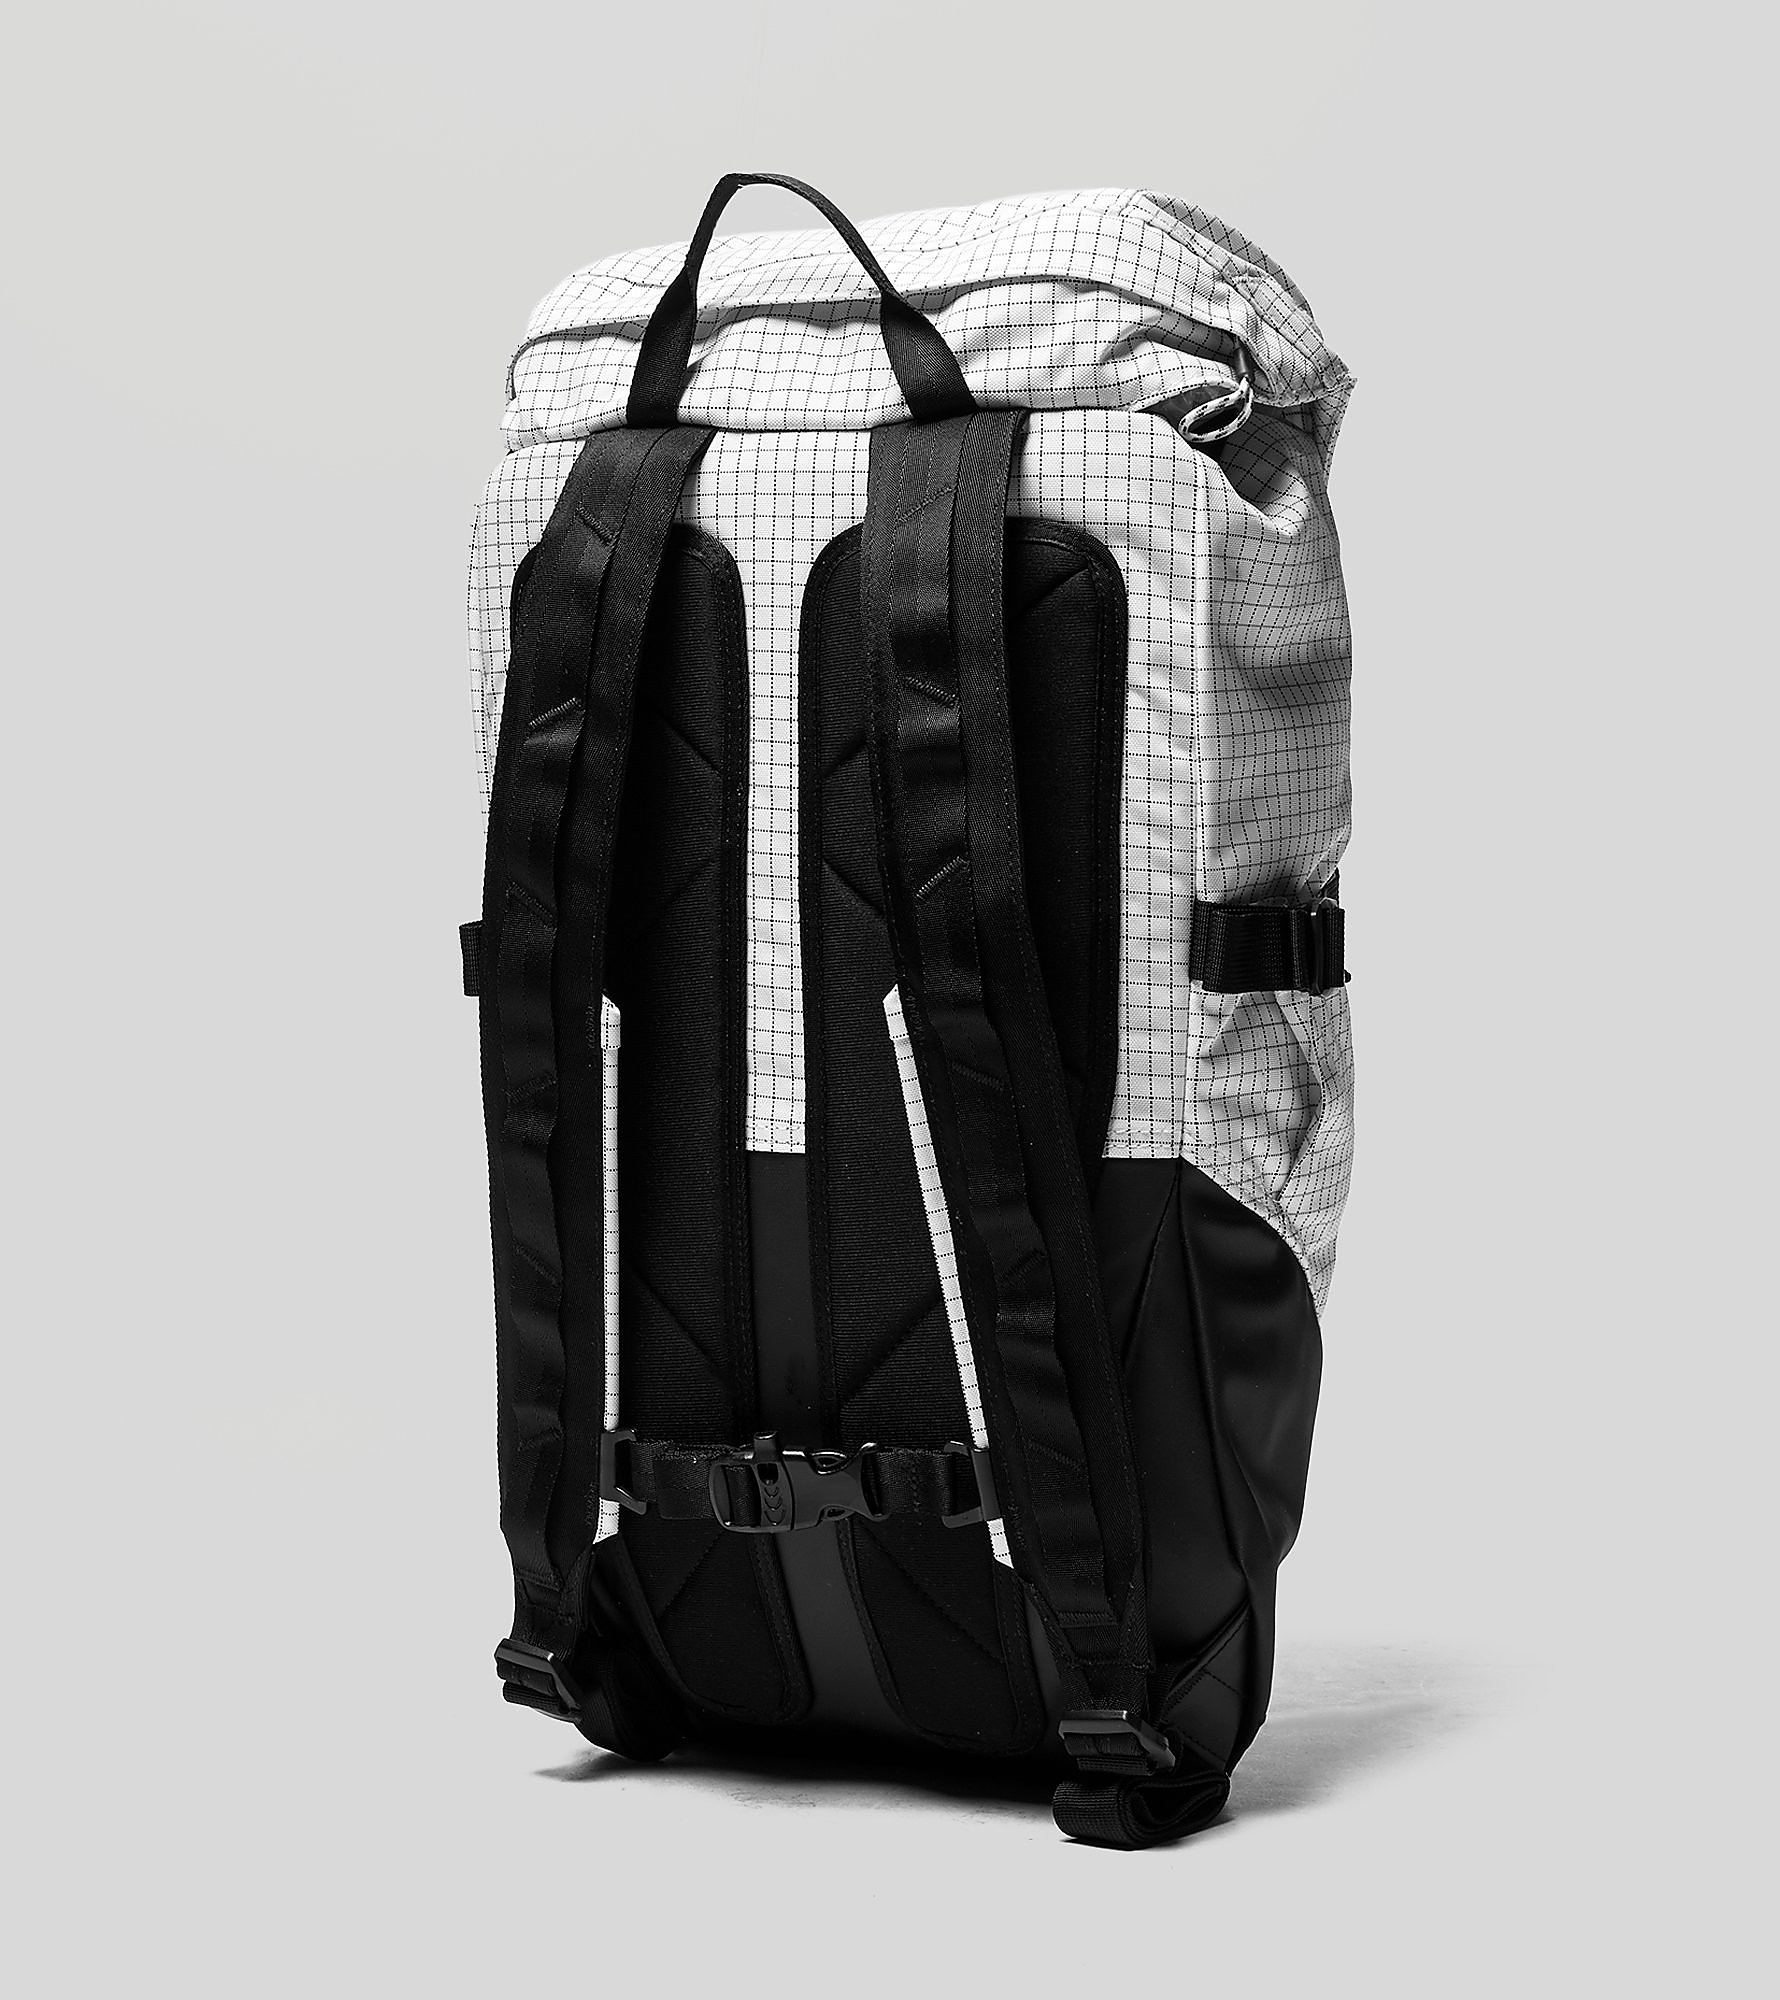 The North Face Black Label Homestead Roadtripper Backpack